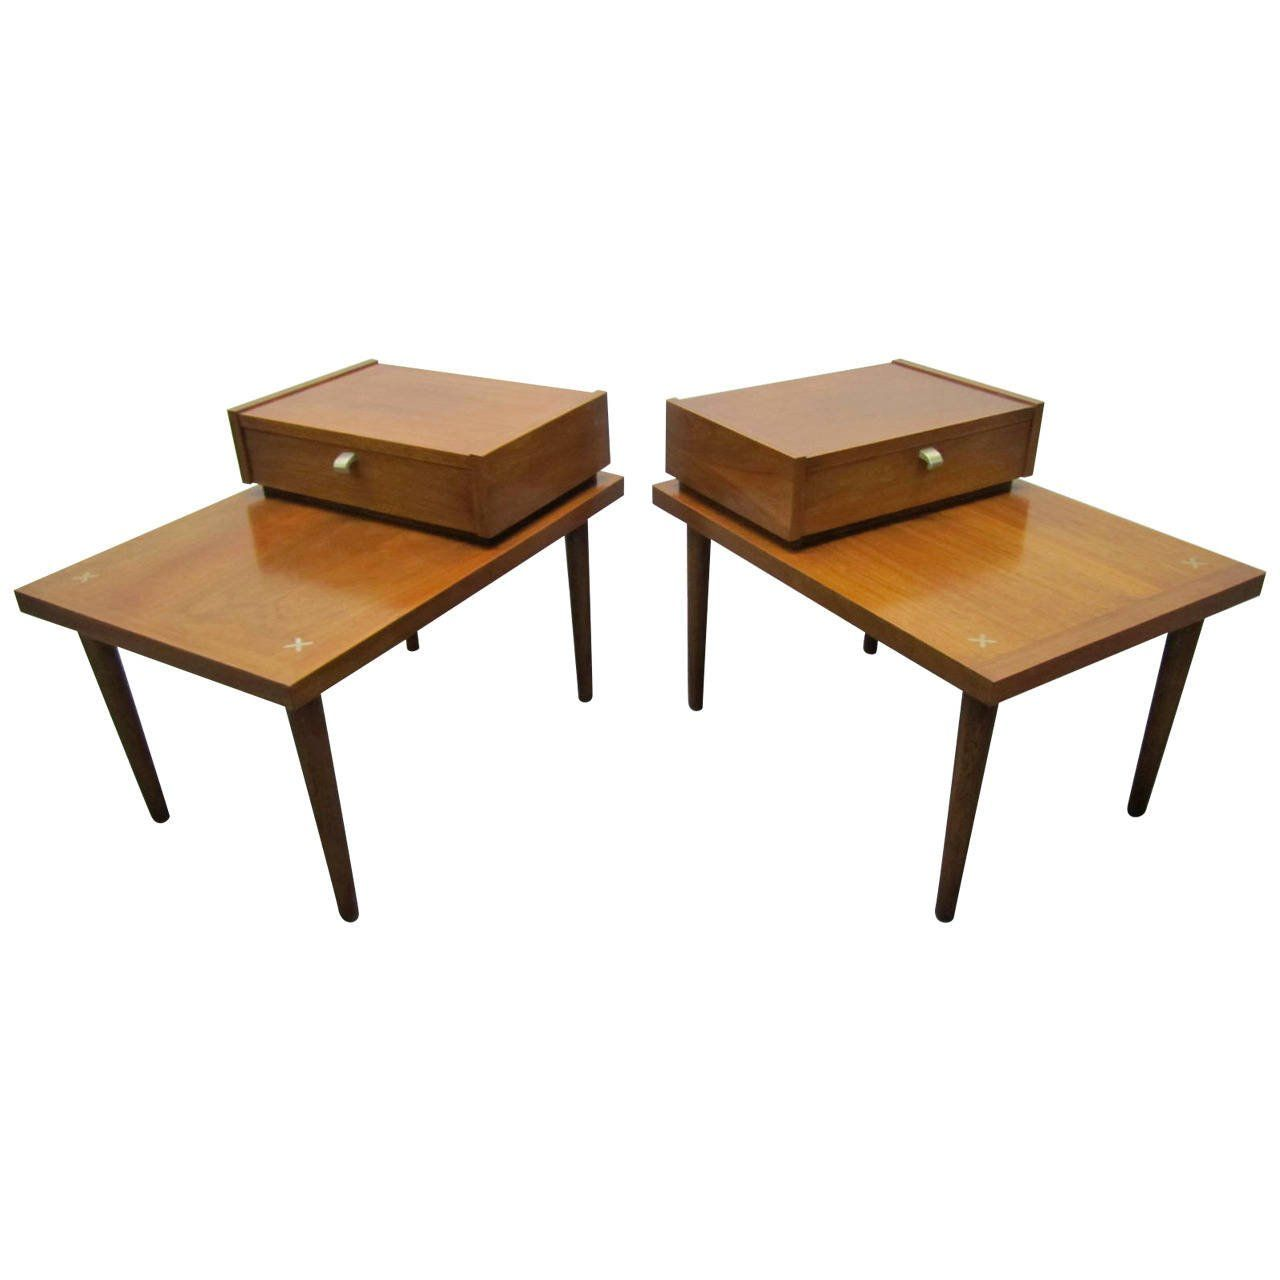 Handsome Pair of American of Martinsville MidCentury Modern End